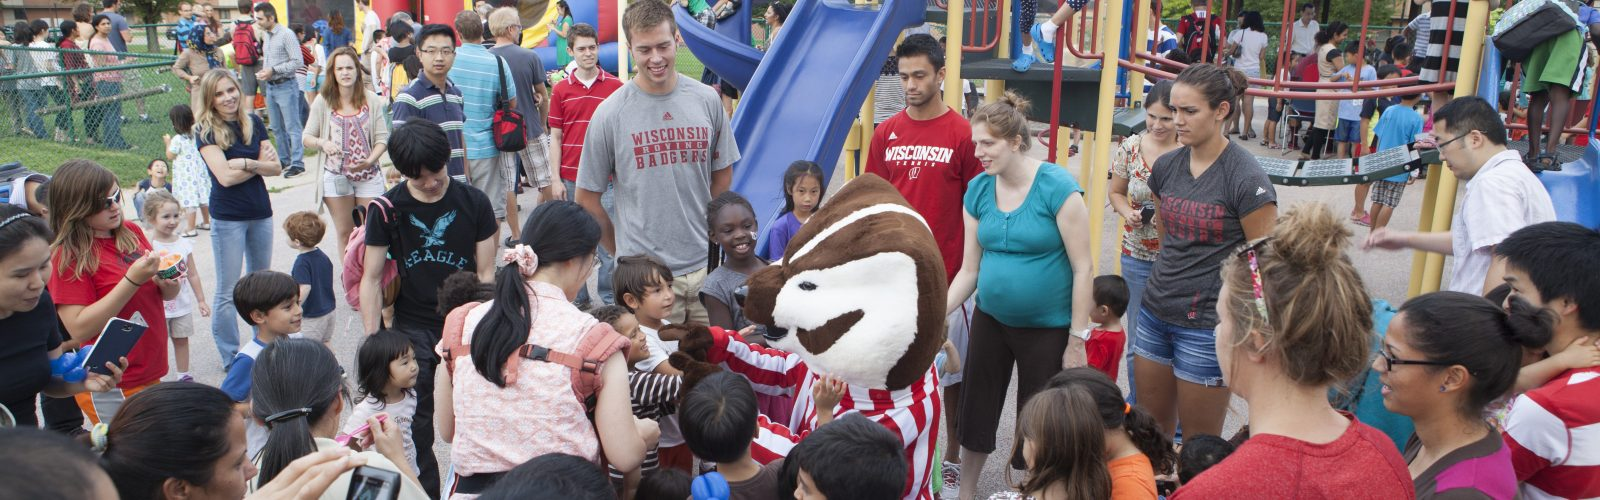 Bucky Badger with families at University Apartments' Ice Cream Social.